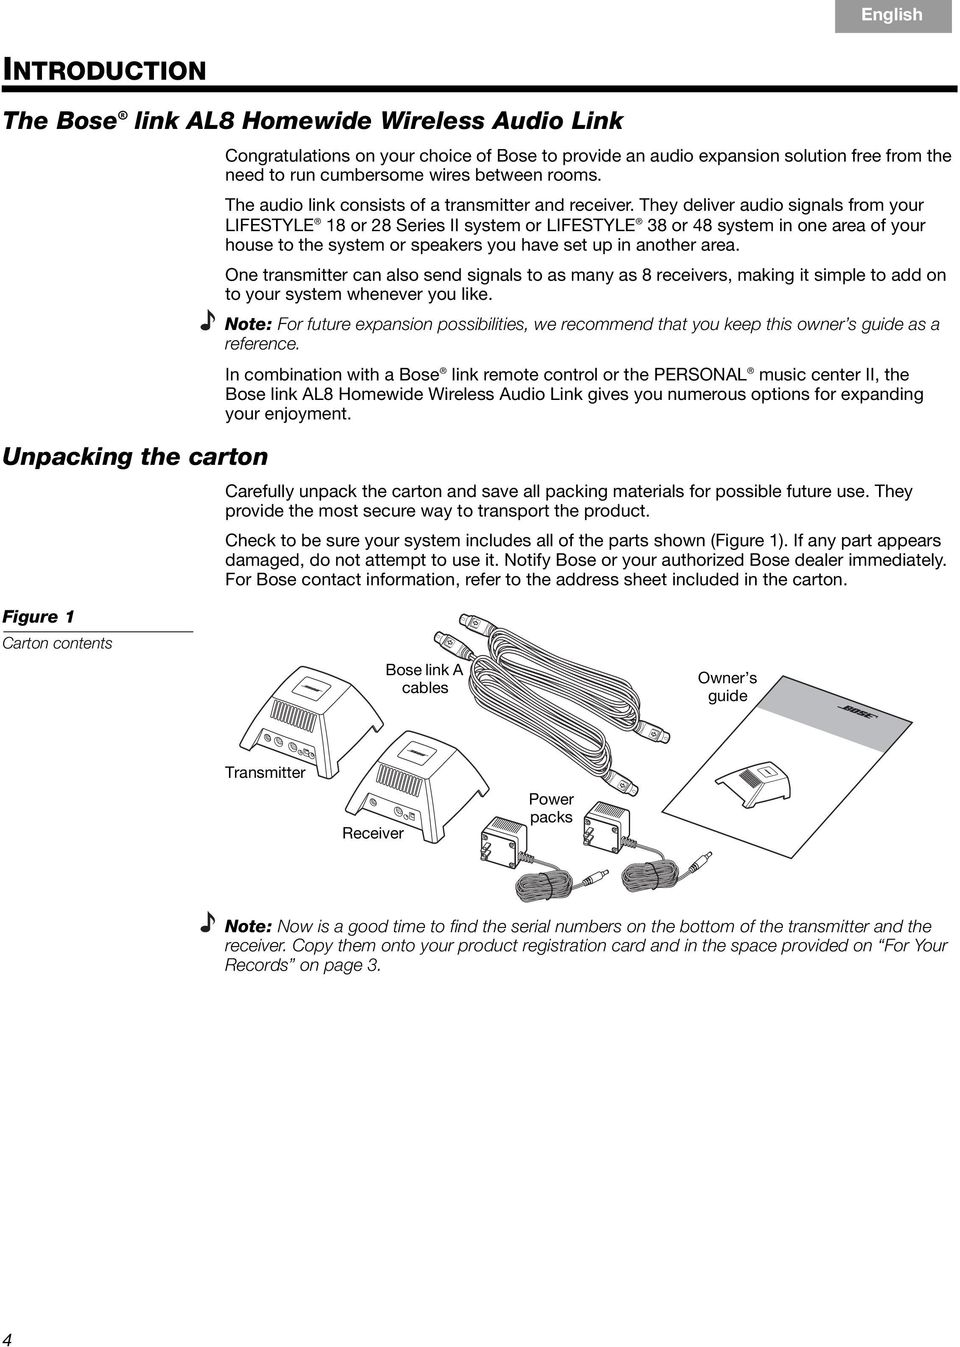 Bose Link Al8 Homewide Wireless Audio Pdf Lifestyle 235 Home Theater Wiring Diagram For They Deliver Signals From Your 18 Or 28 Series Ii System 38